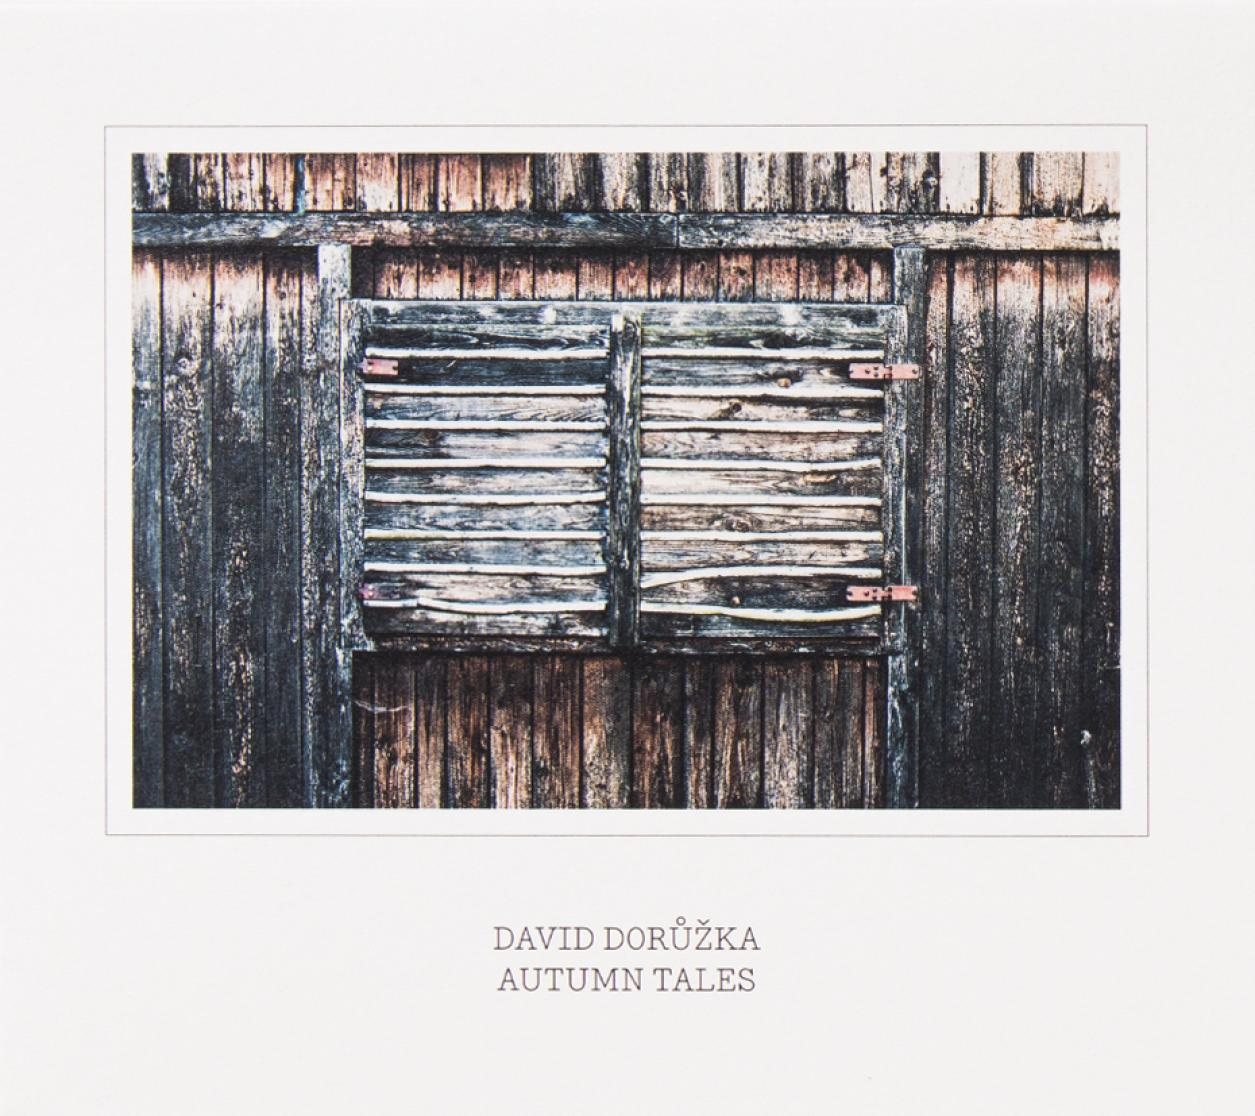 David Dorůžka: Autumn Tales